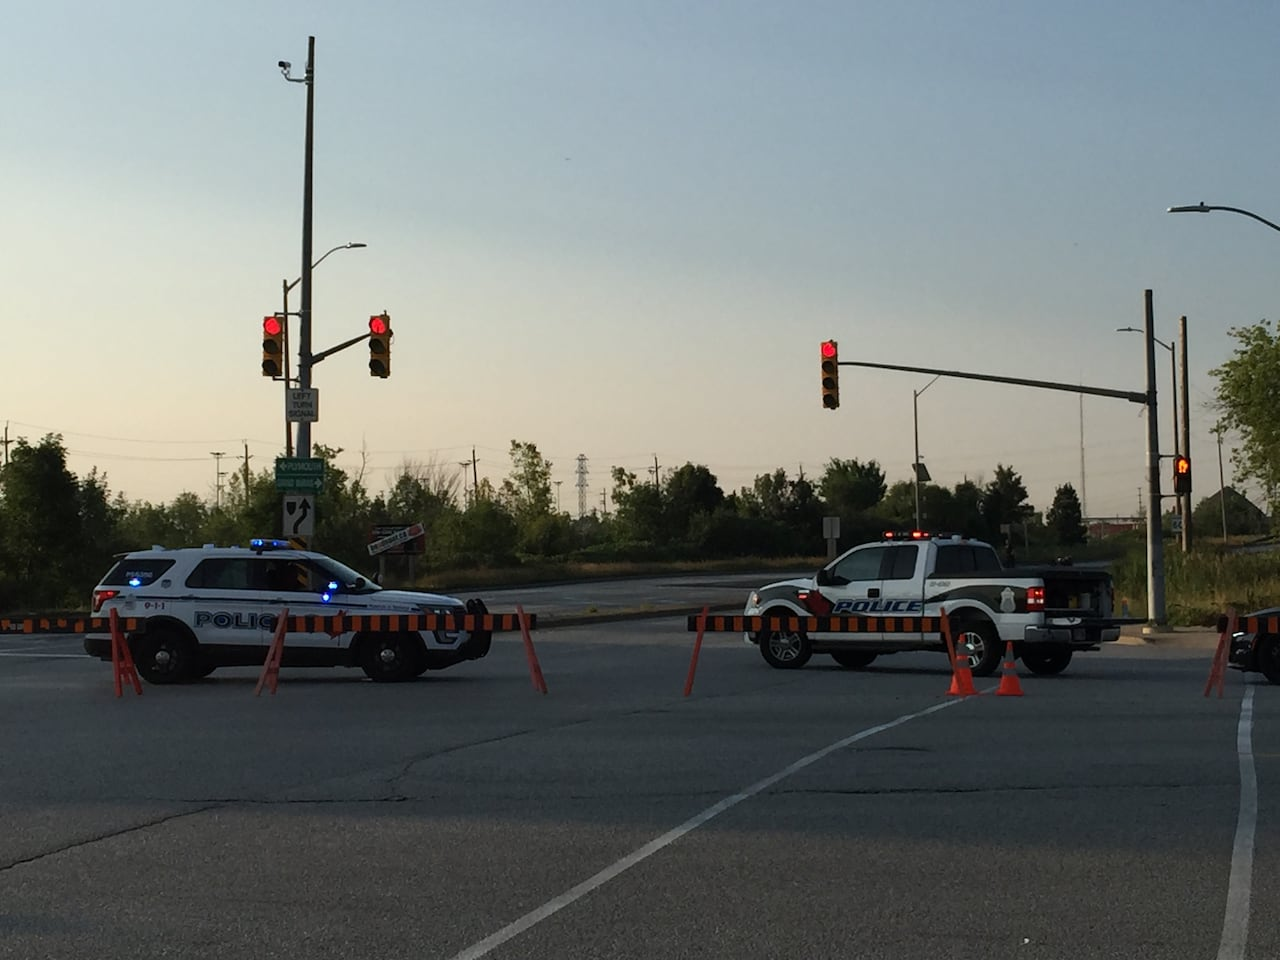 29-year-old dead after fatal motorcycle accident in area of